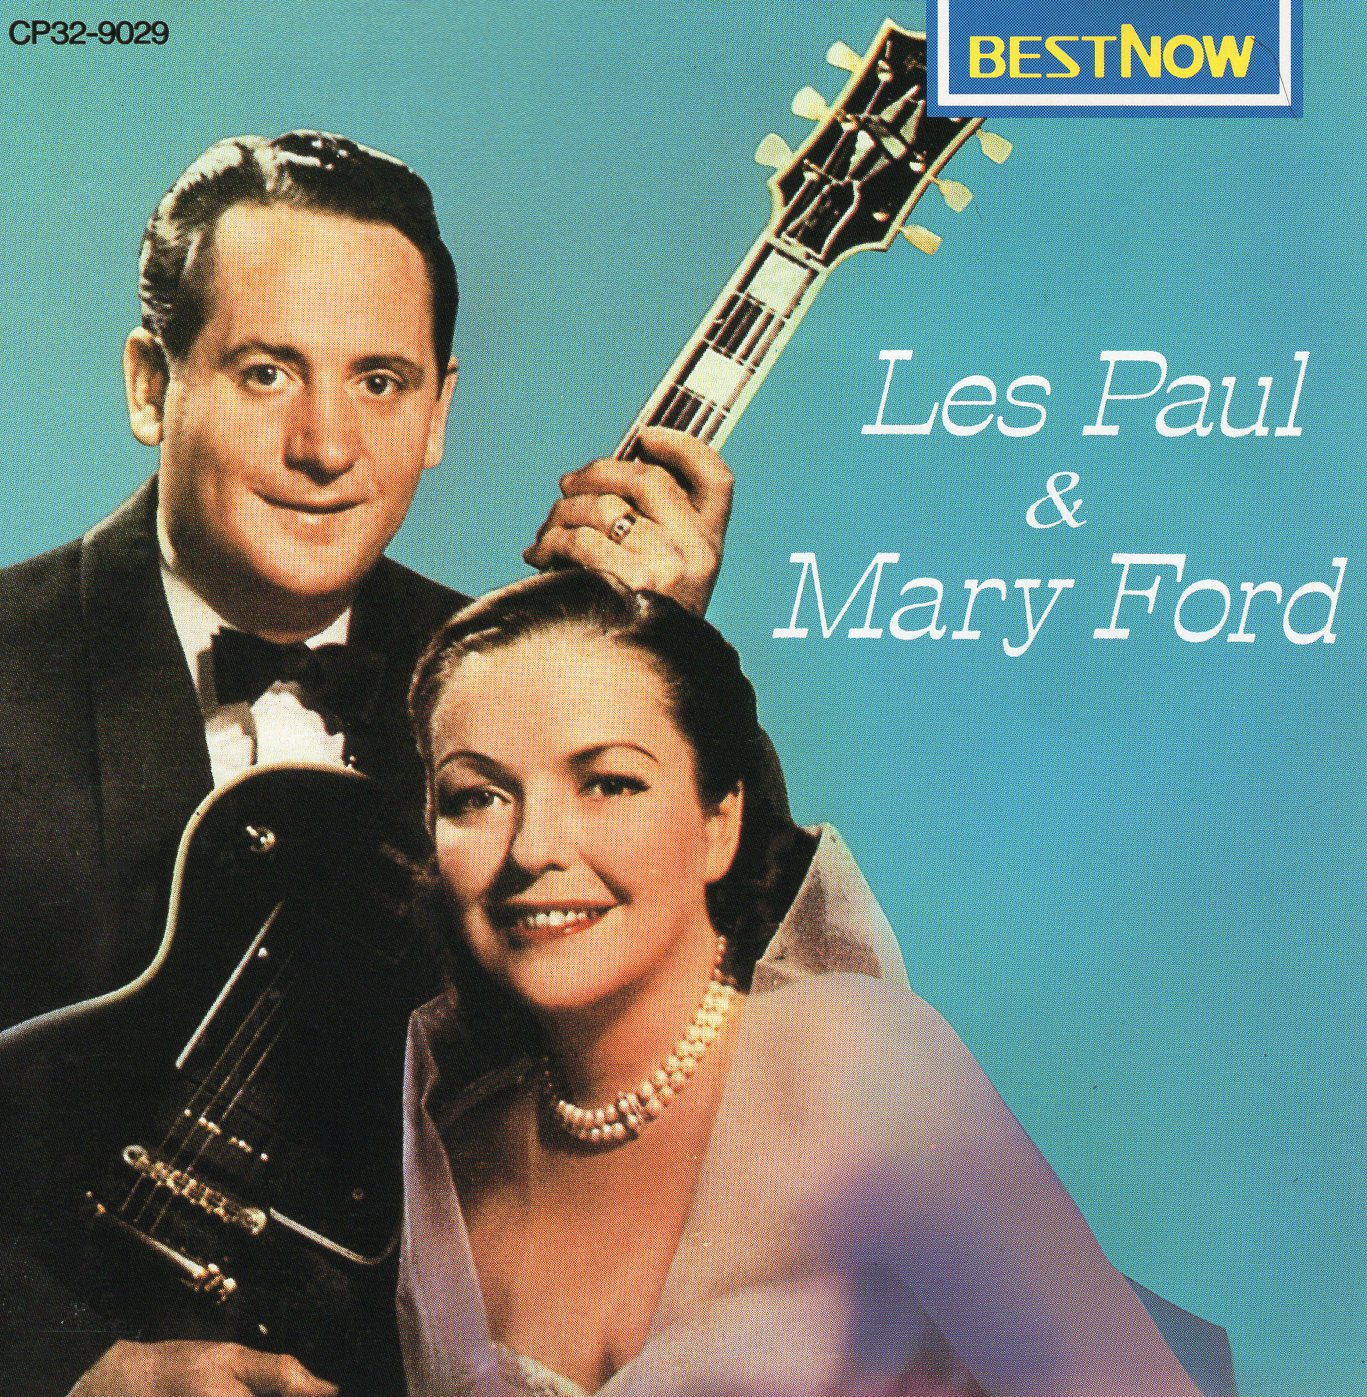 """Les Paul & Mary Ford"" Les Paul & Mary Ford"